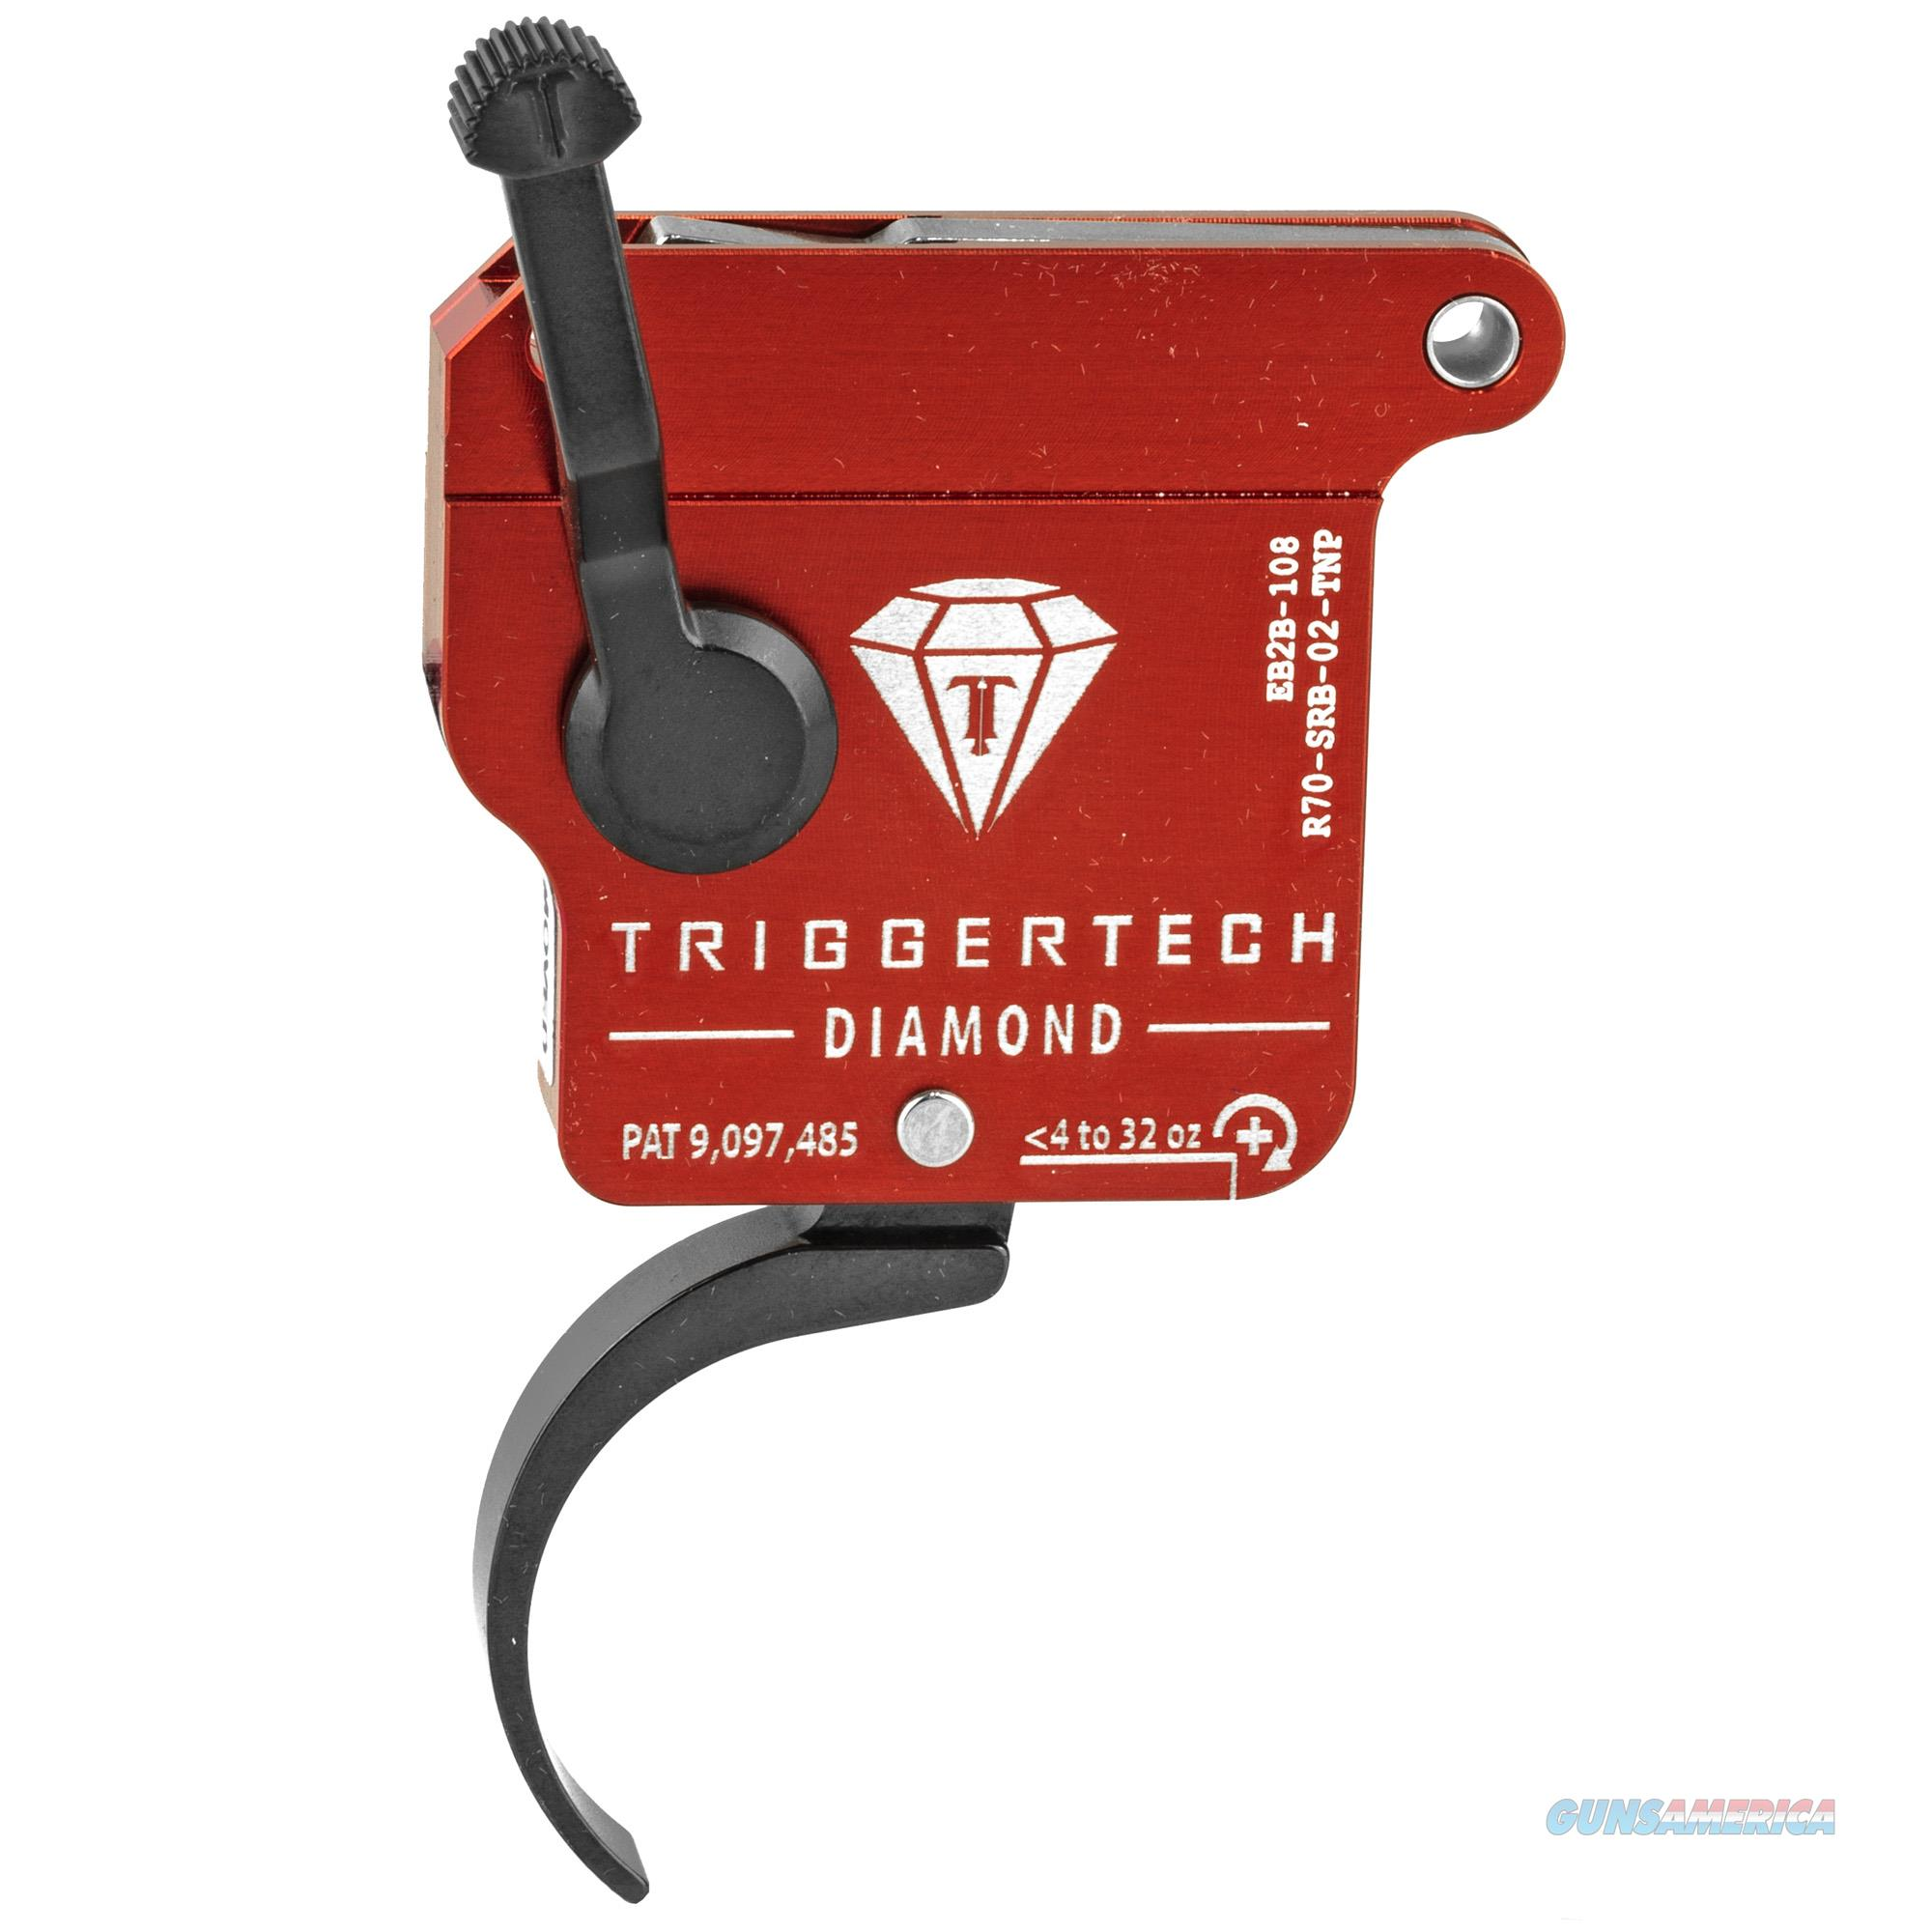 TriggerTech R70SRB02TNP Diamond Without Bolt Release Remington 700 Black Single-Stage Pro Curved 0.30-2 lbs Right  Non-Guns > Gun Parts > Rifle/Accuracy/Sniper